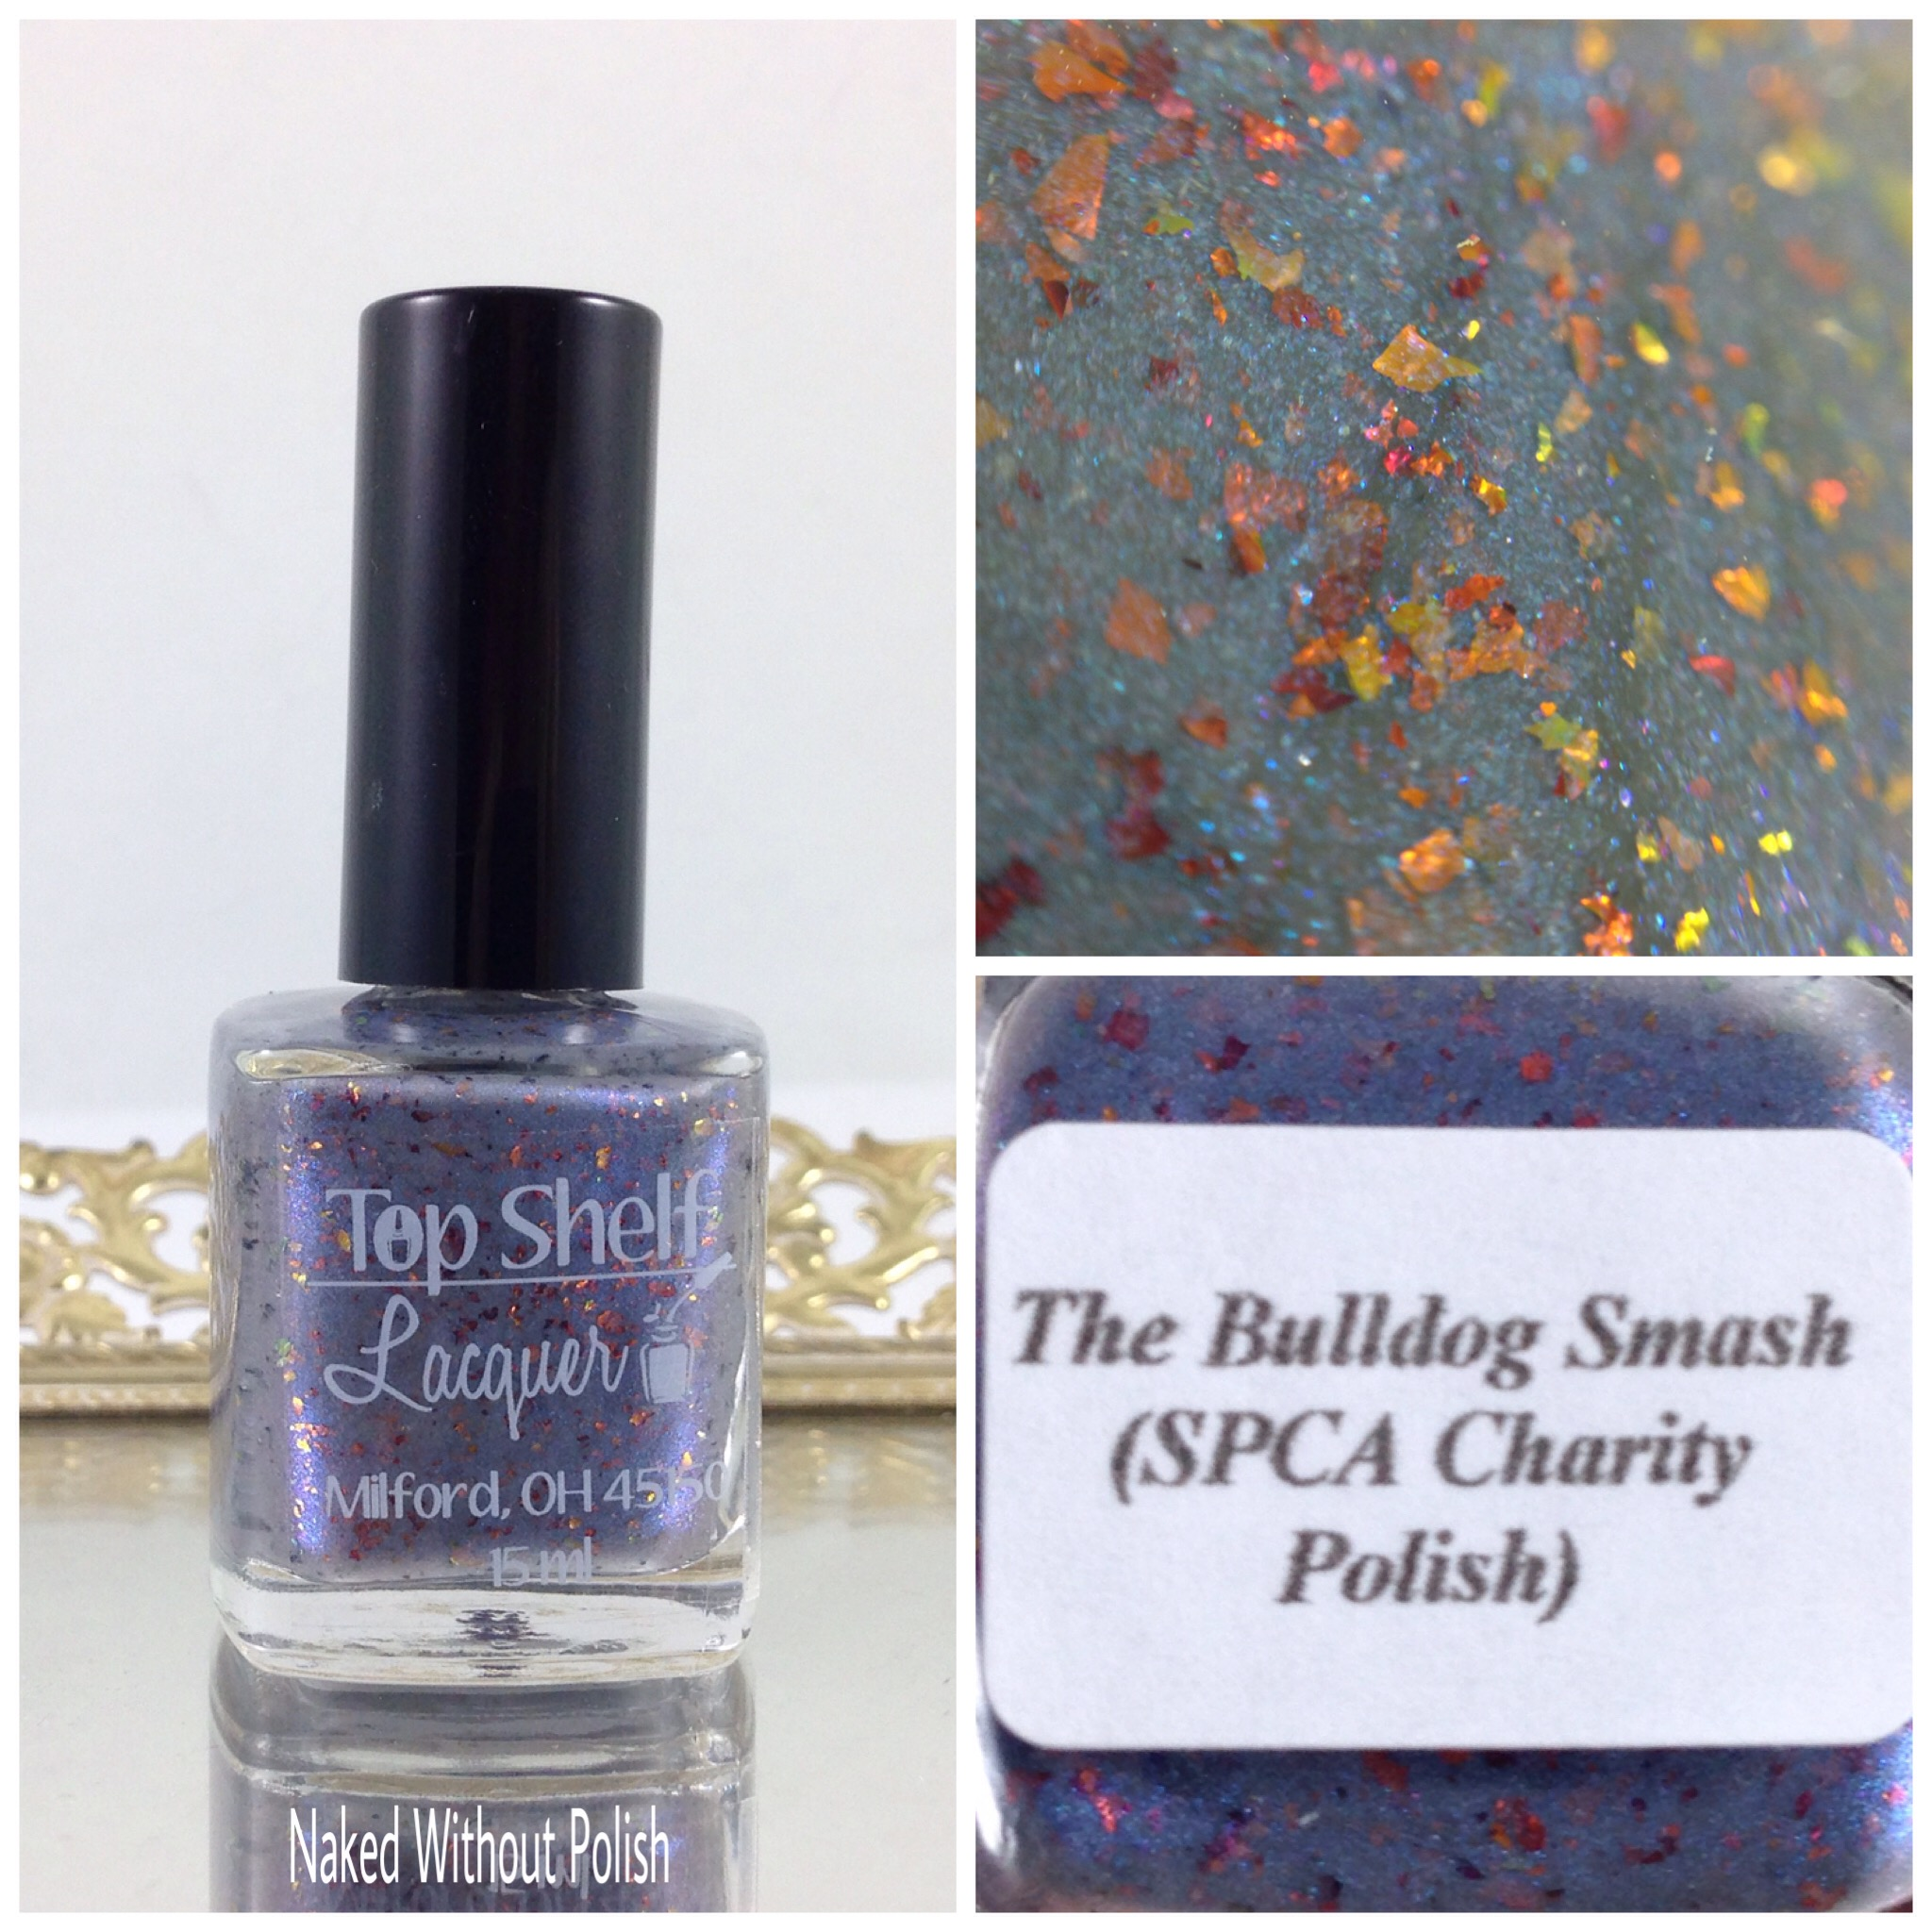 Top-Shelf-Lacquer-The-Bulldog-Smash-1